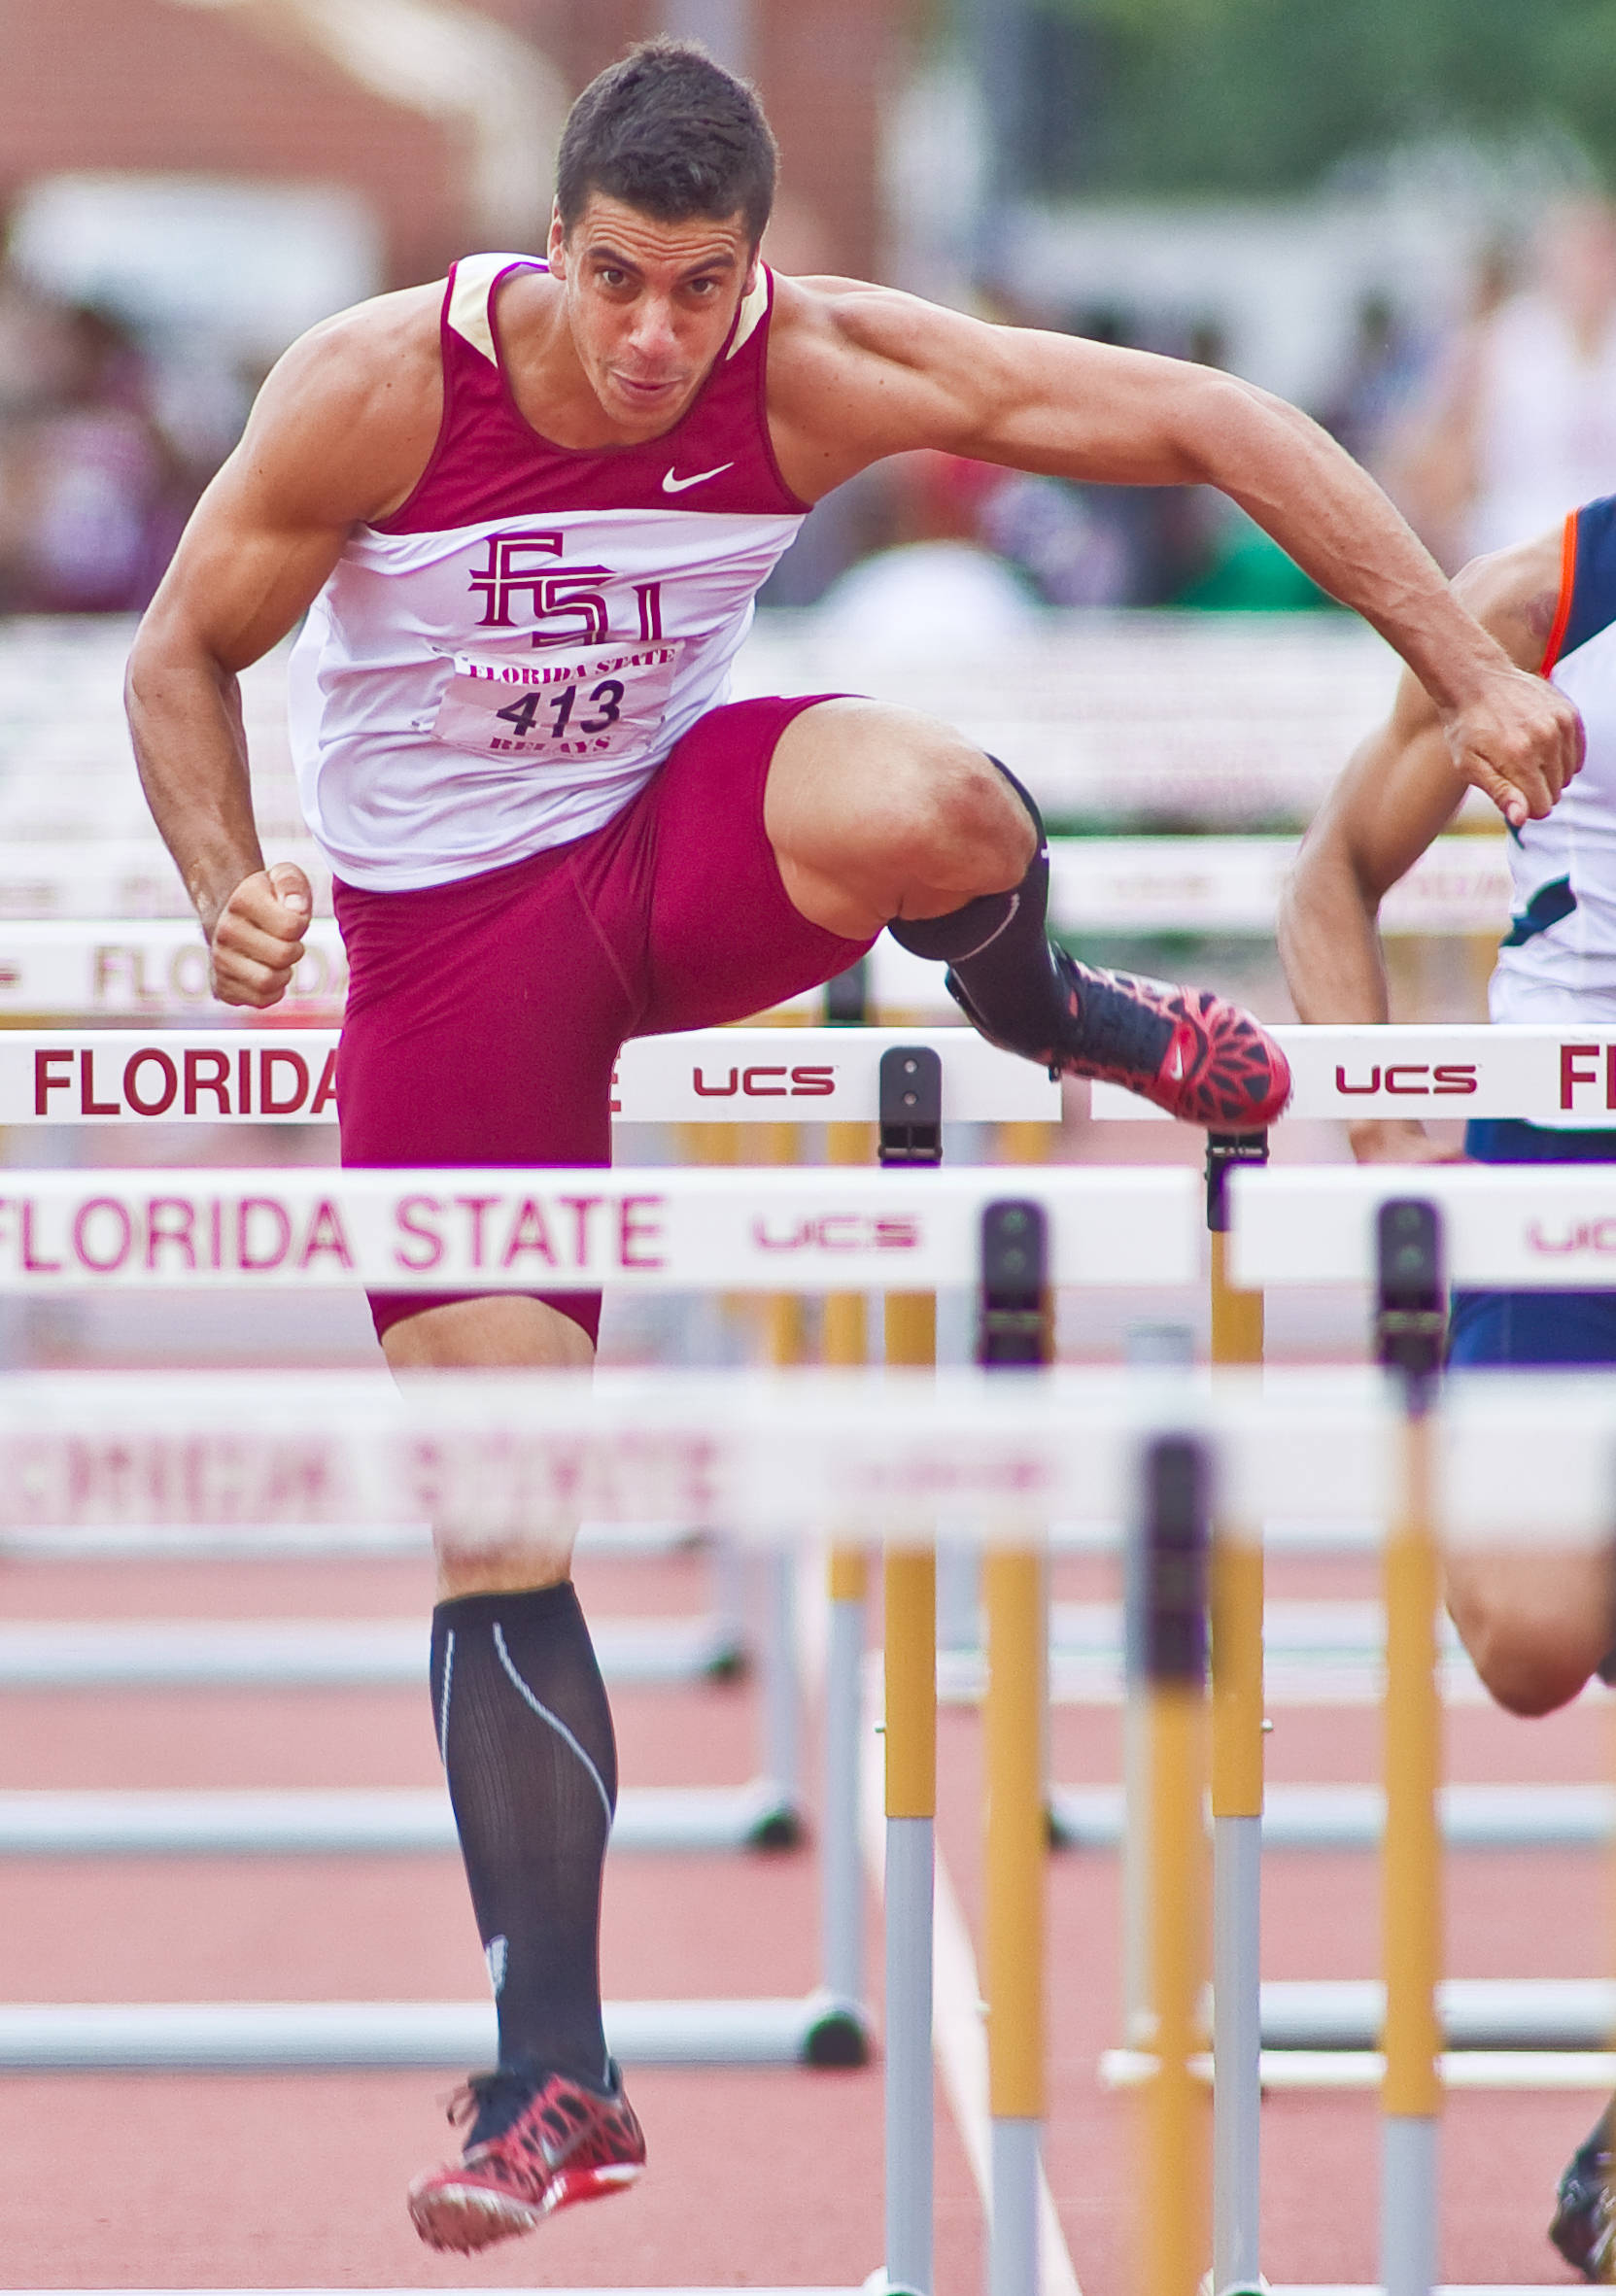 Gonzalo Barroilhet collected the first victory of the day for the Seminoles, winning the 110-meter hurdles in 14.01.